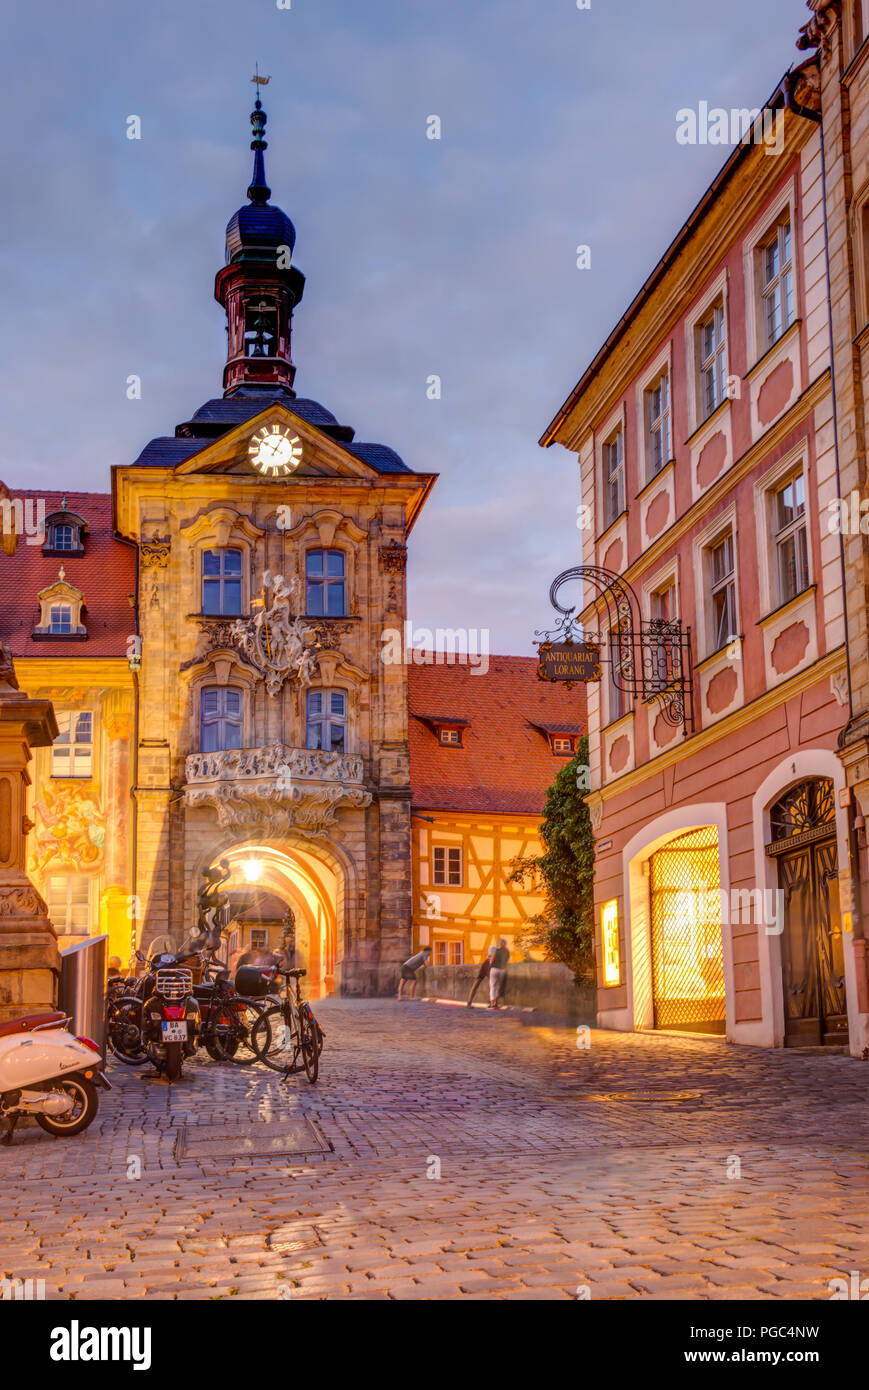 BAMBERG, GERMANY - JUNE 19: Illuminated Altes Rathaus in Bamberg, Germany on June 19, 2018. The historic town hall was built in the 14th century. - Stock Image